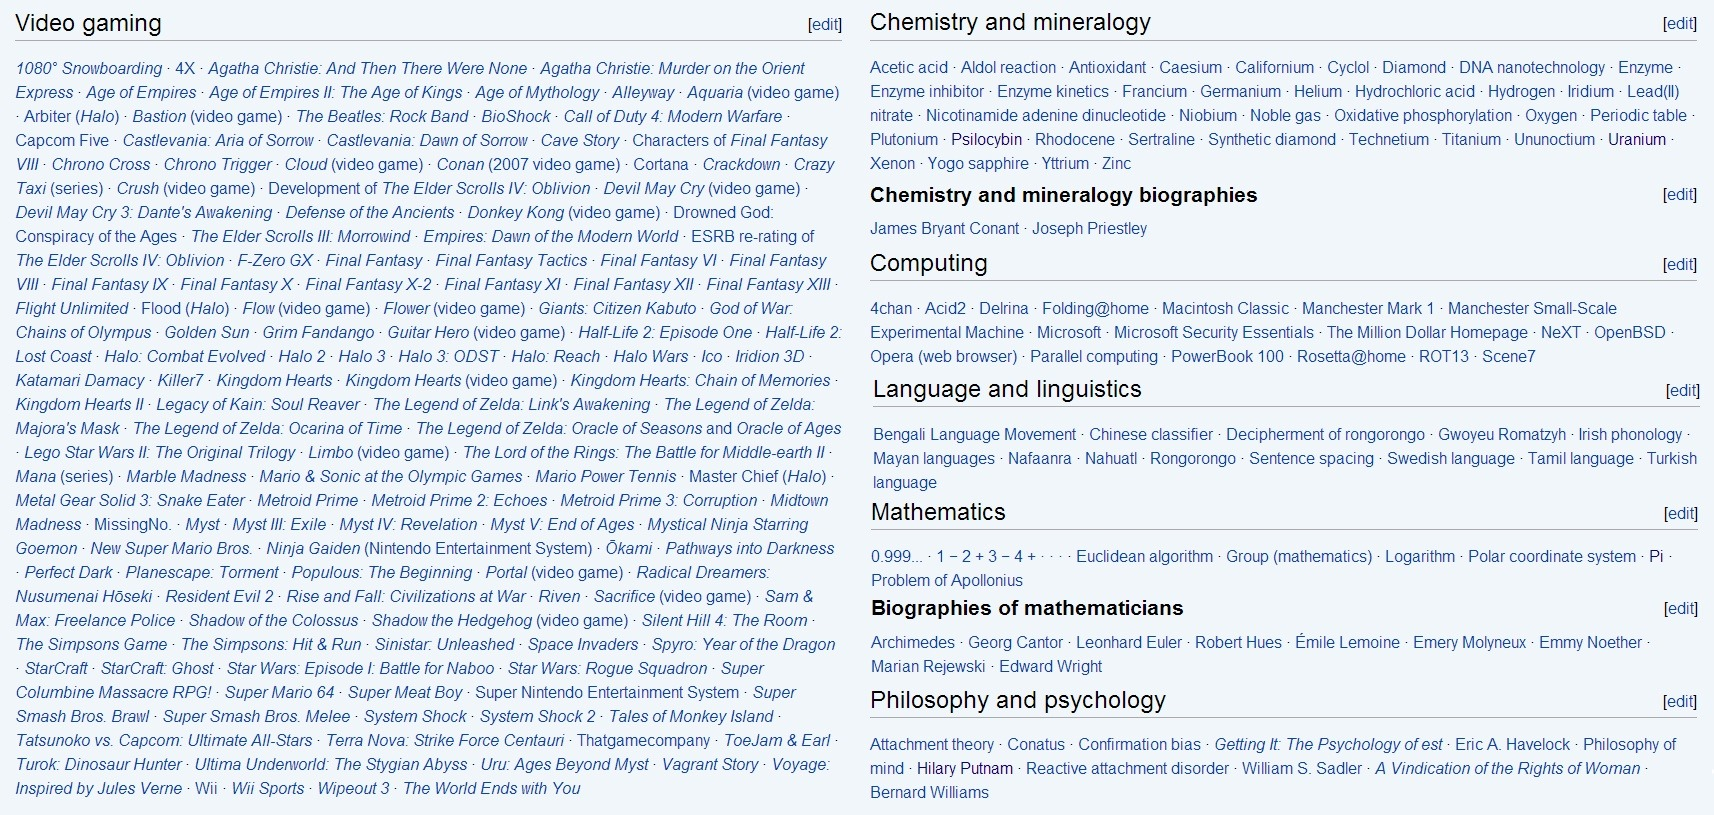 What are some common misconceptions about Wikipedia? - Quora